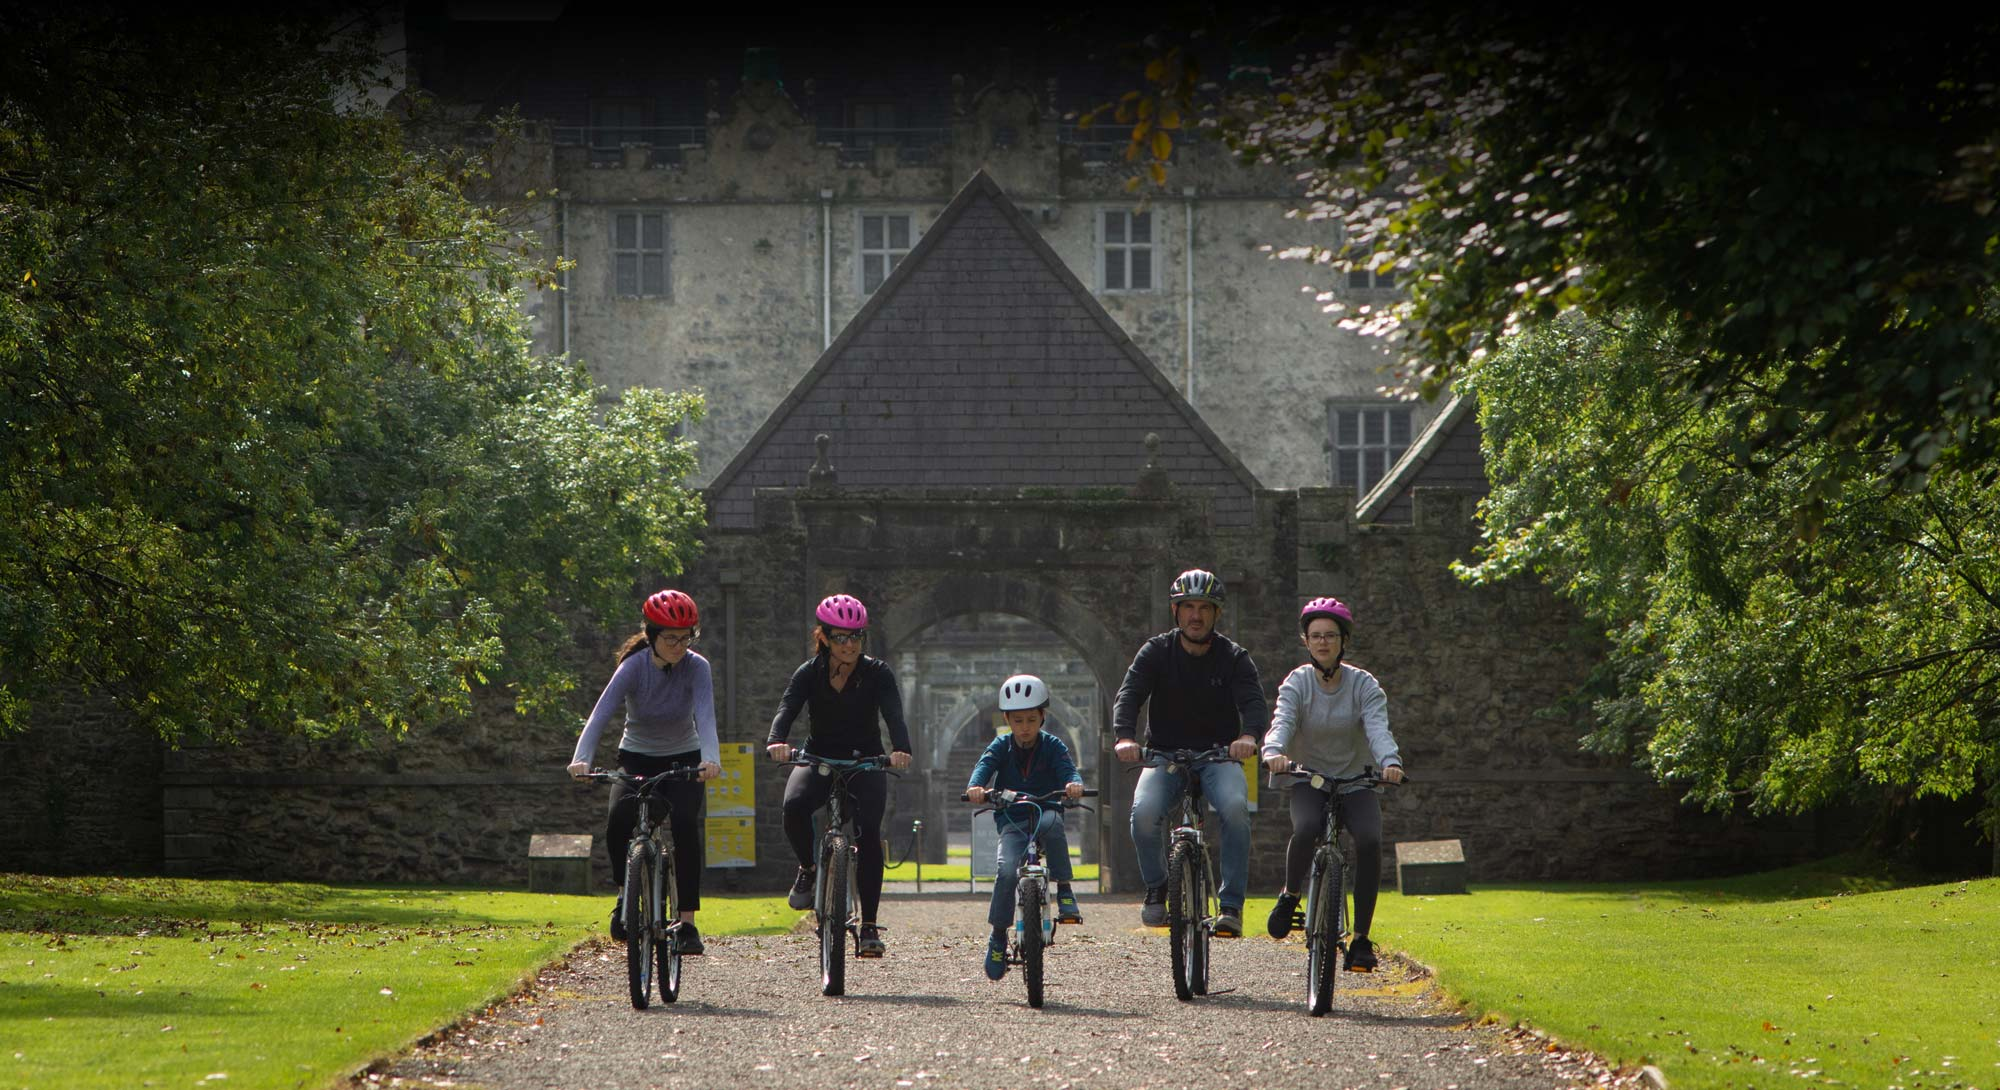 Explore Portumna's Heritage by Bicycle - Dick's Bike Hire